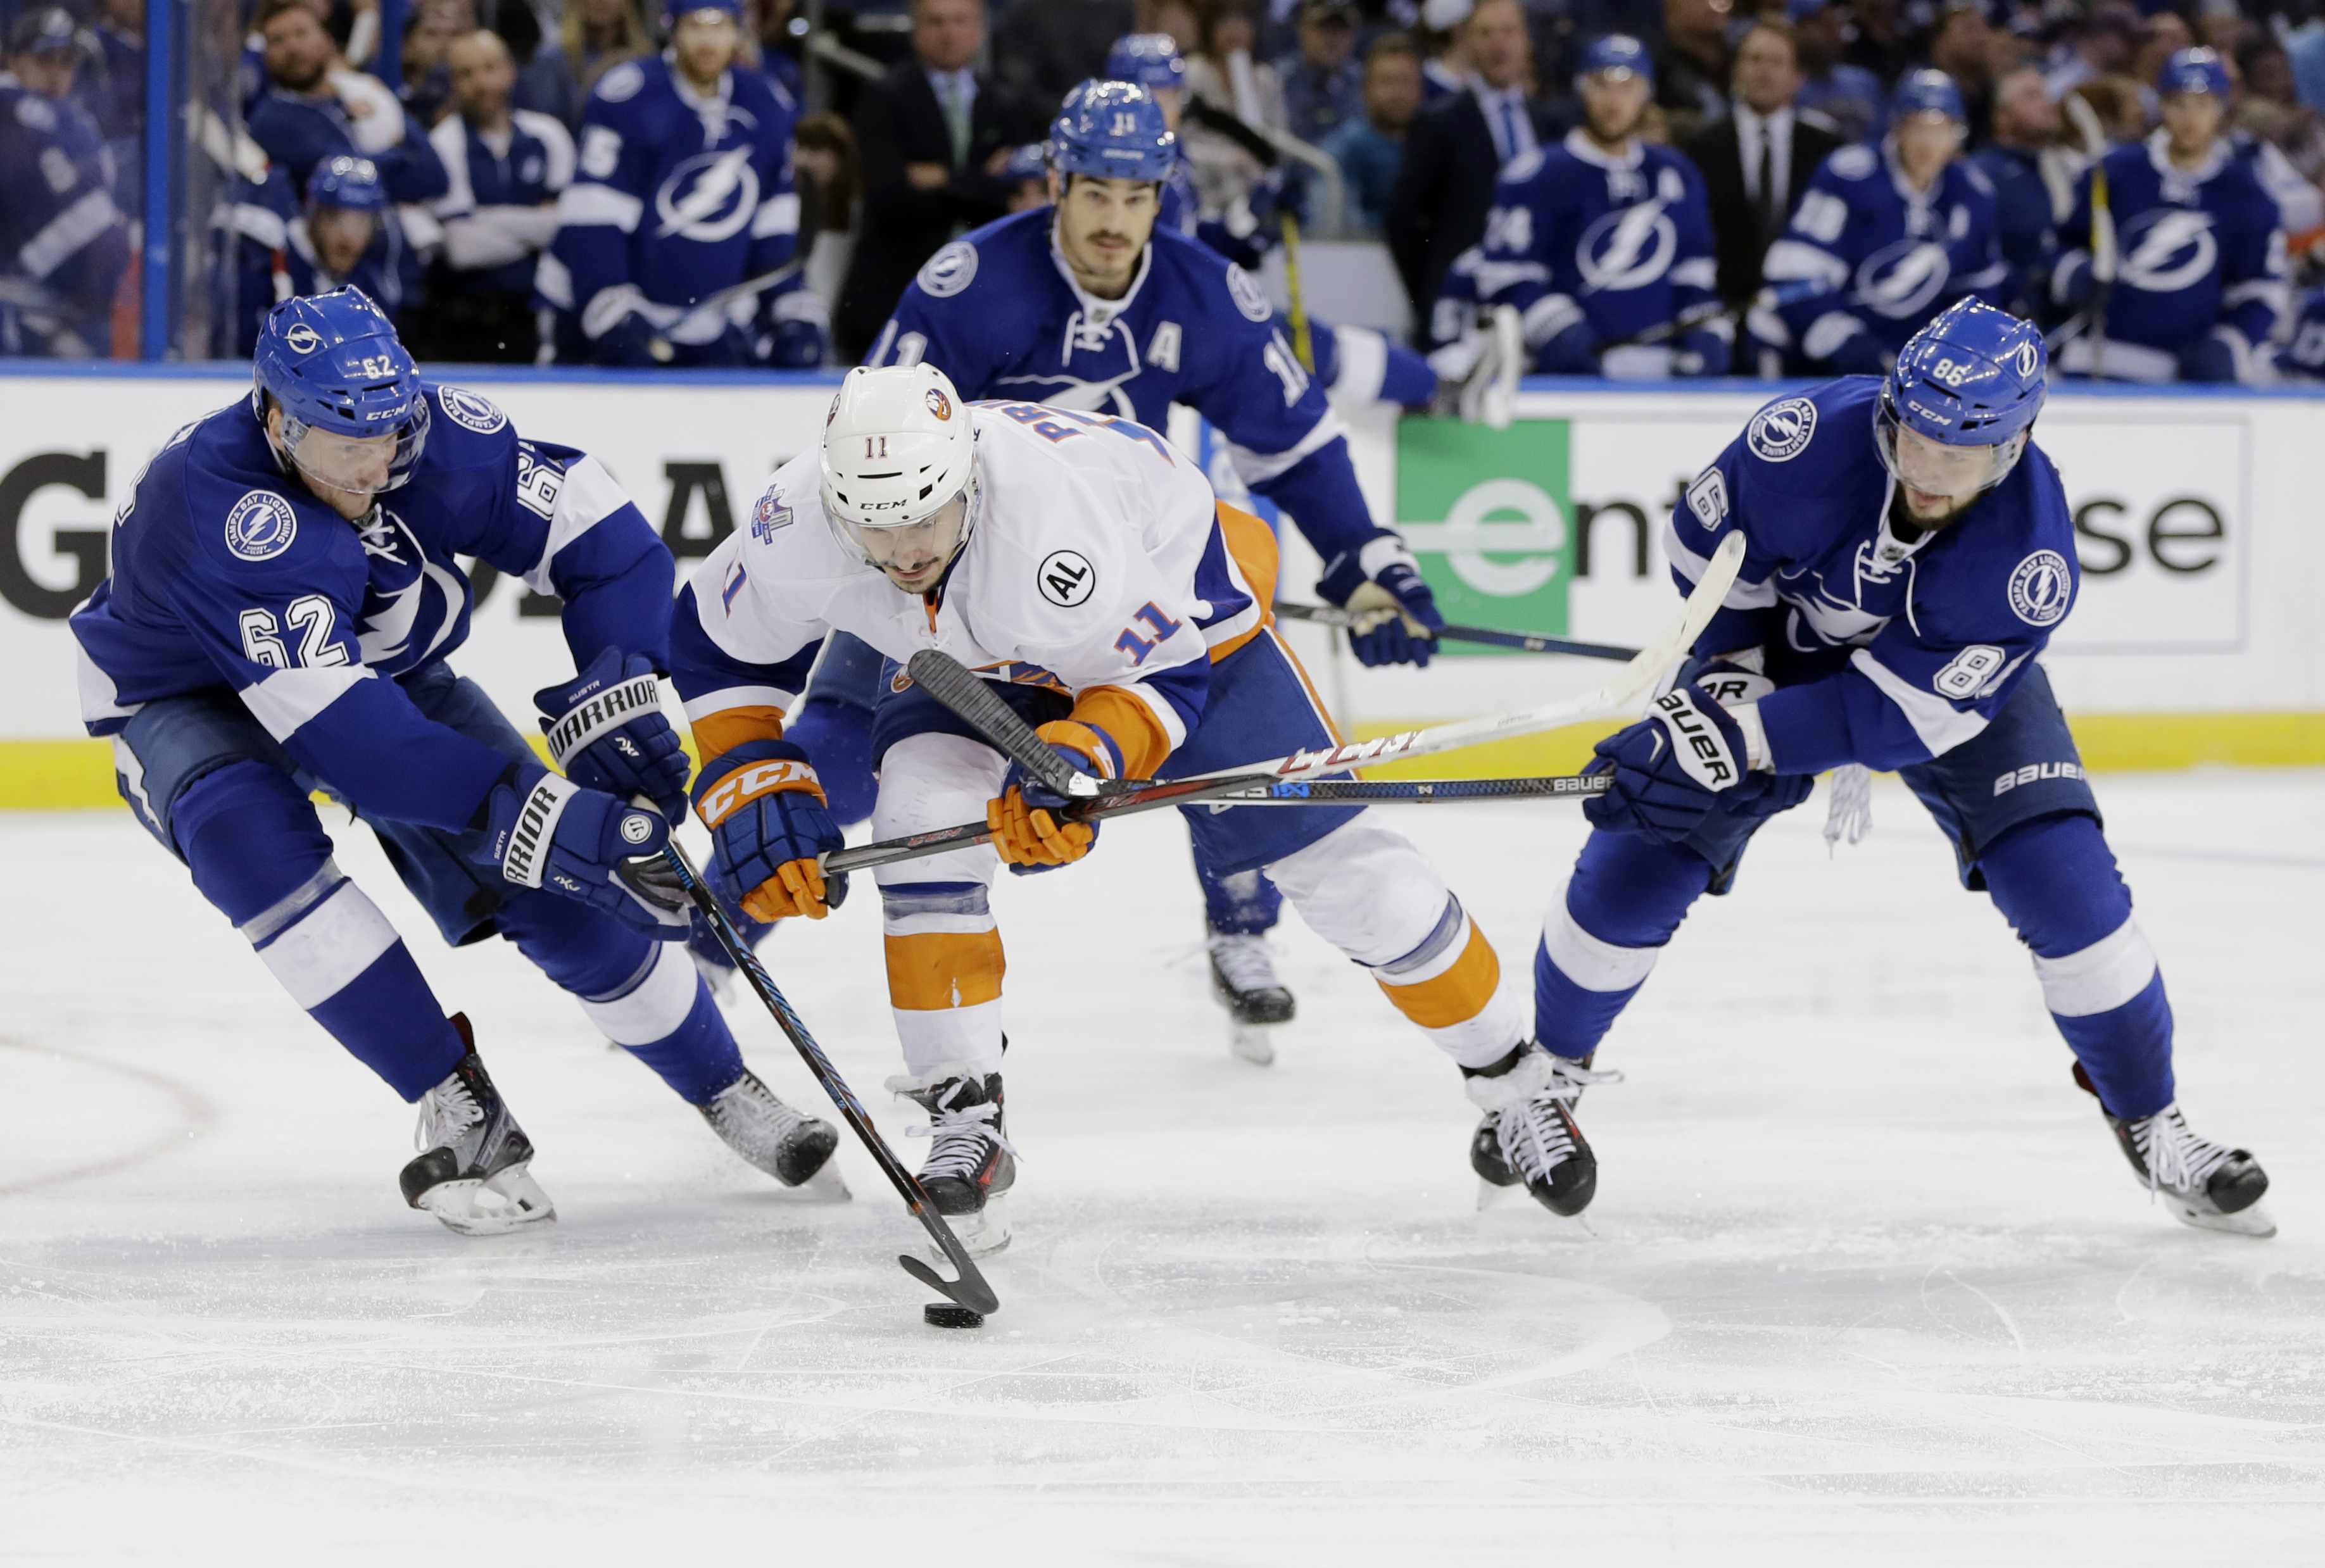 Tampa Bay Lightning defenseman Andrej Sustr (62), of the Czech Republic, takes control of the puck from New York Islanders center Shane Prince (11) as Tampa Bay Lightning right wing Nikita Kucherov (86), of Russia, defends, during the third period of Game